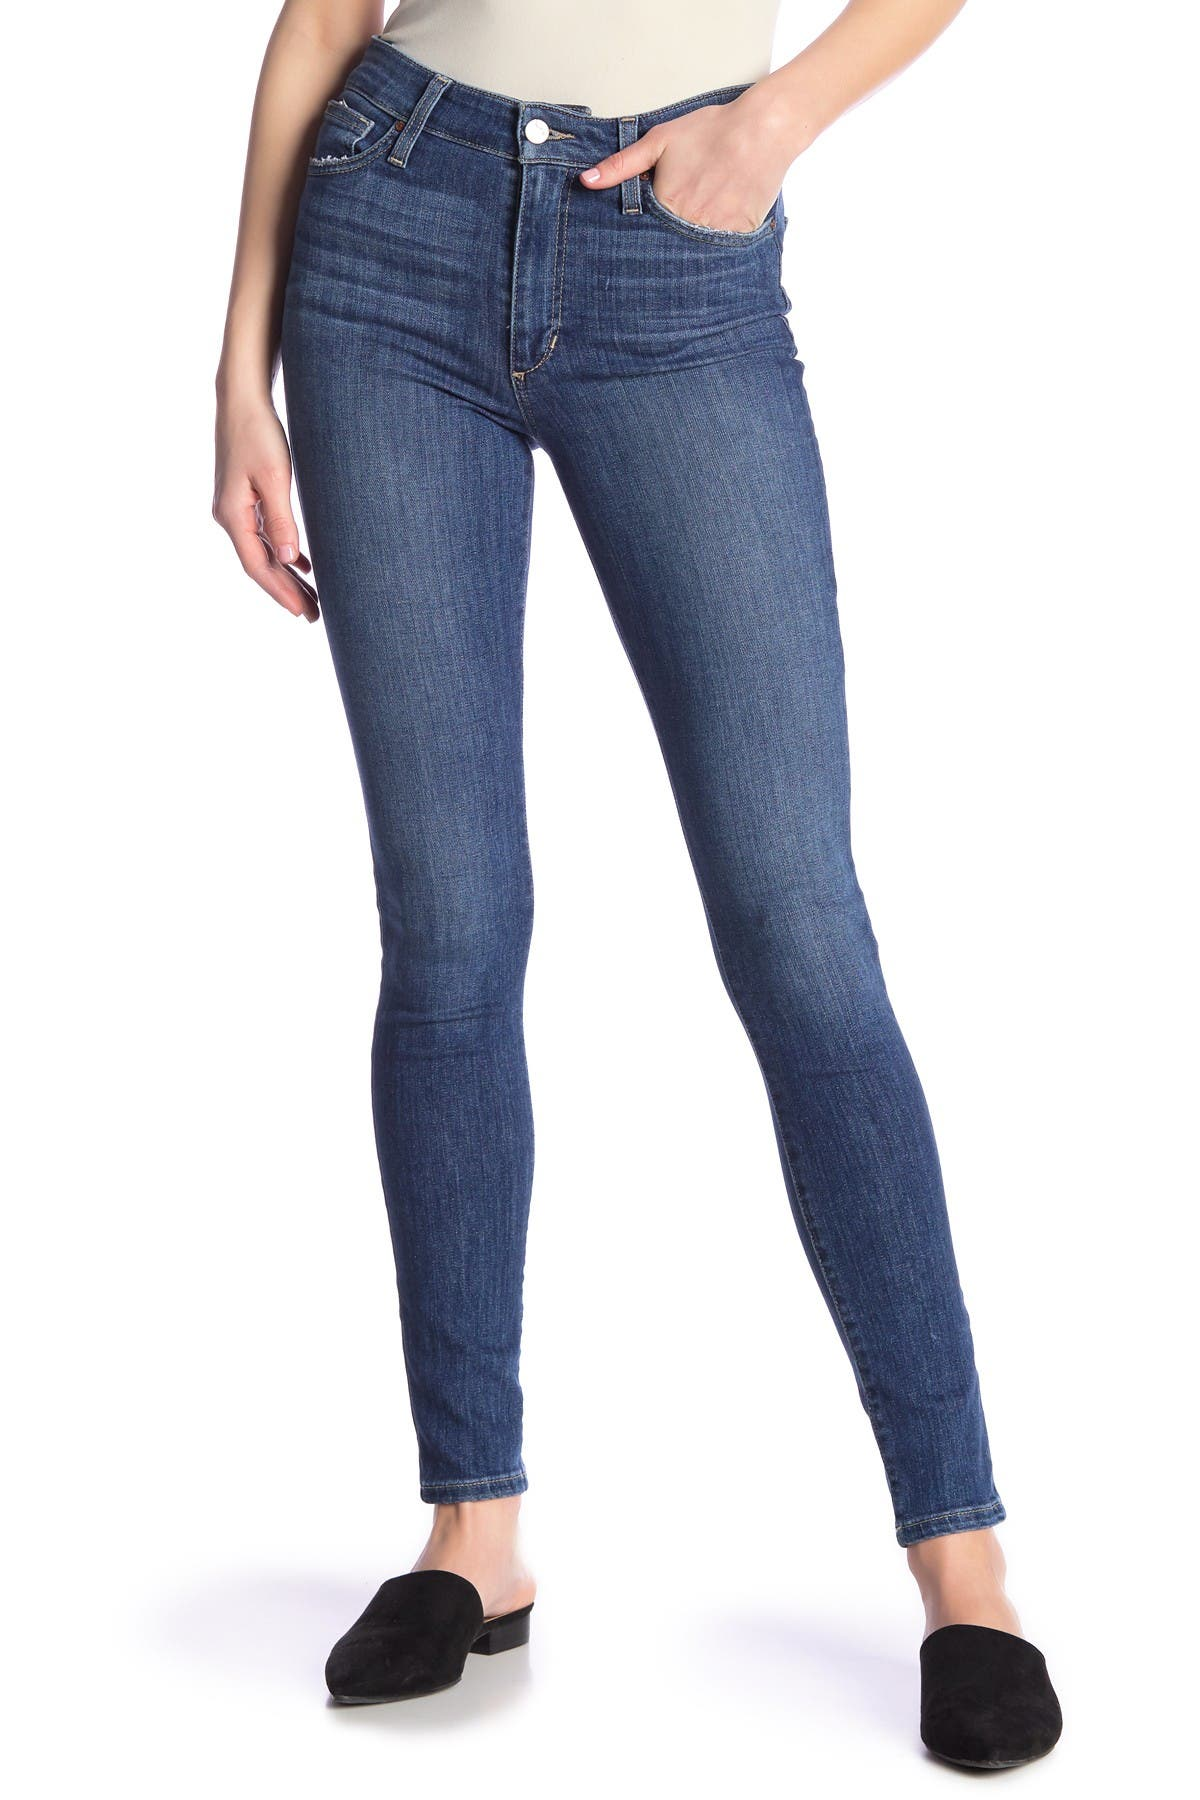 Image of Joe's Jeans Charlie High Rise Ankle Skinny Jeans